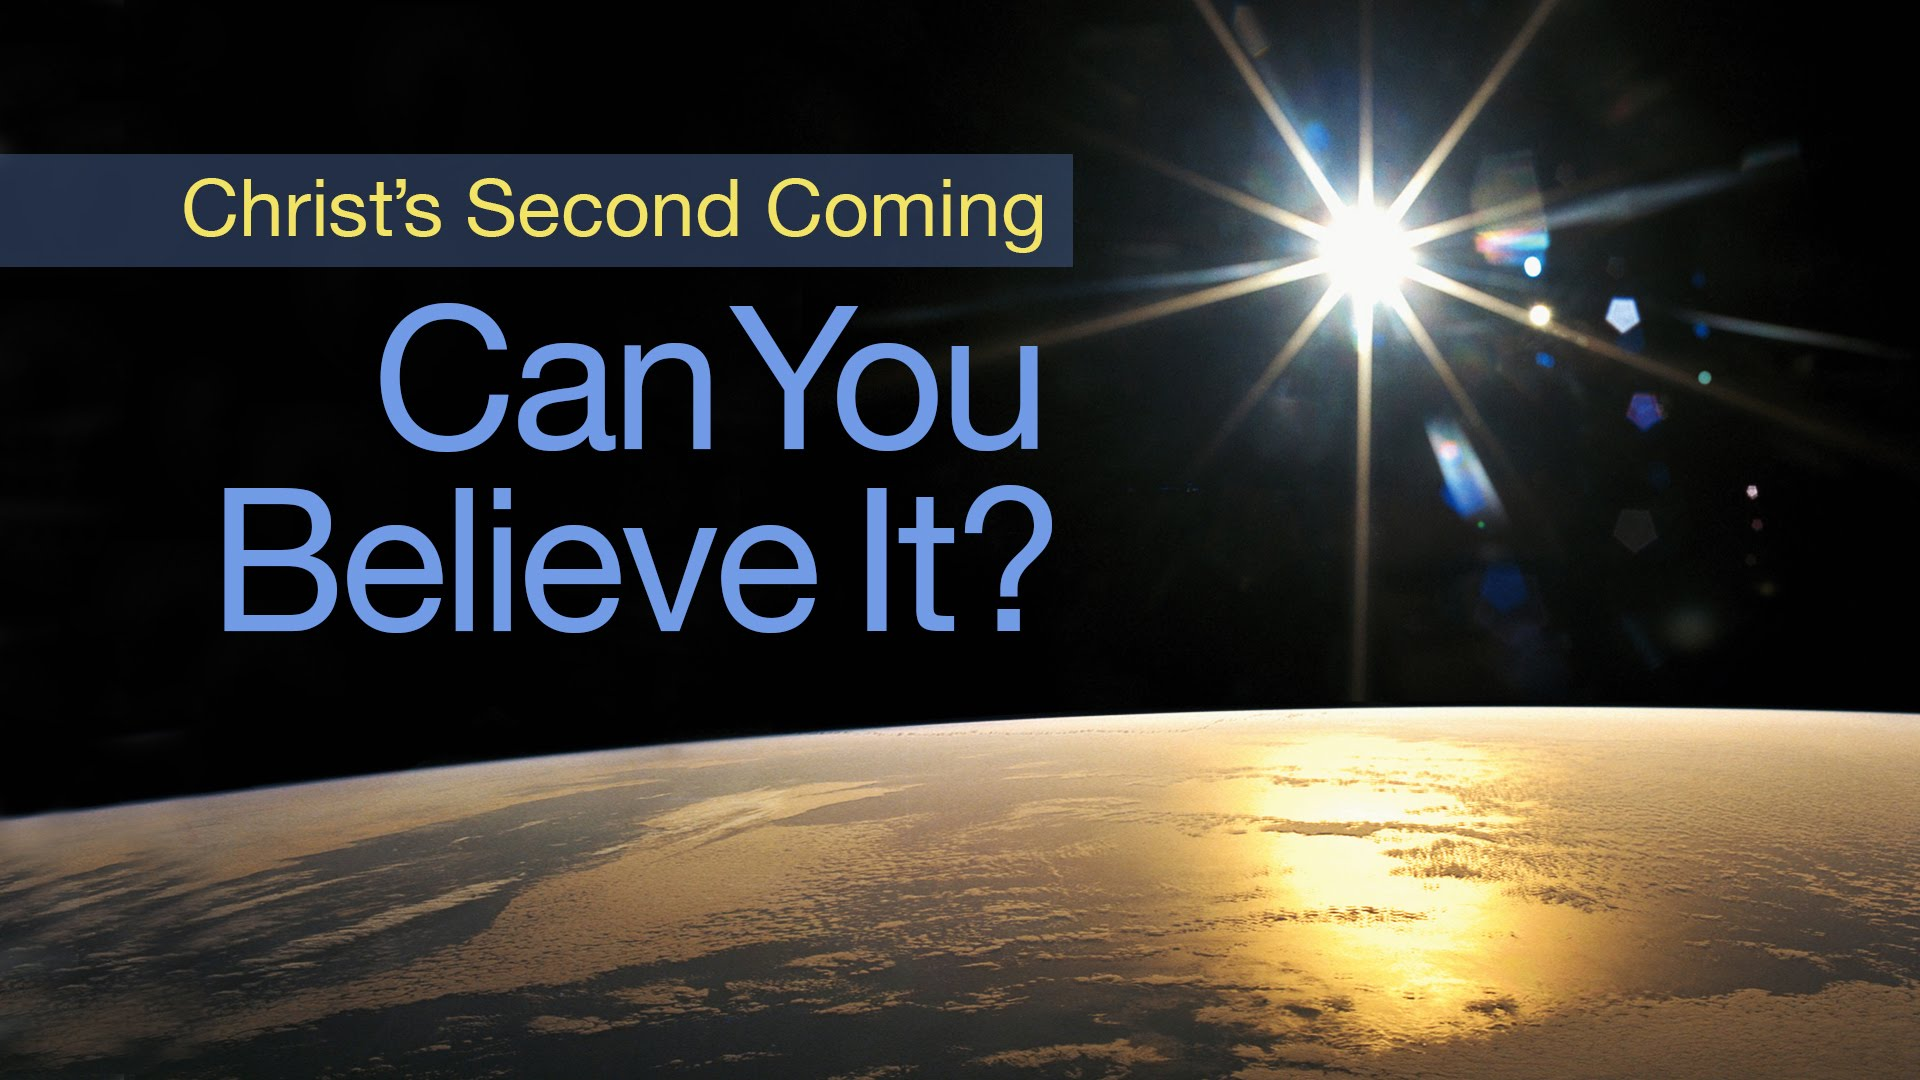 Christ's Second Coming: Can You Believe It?